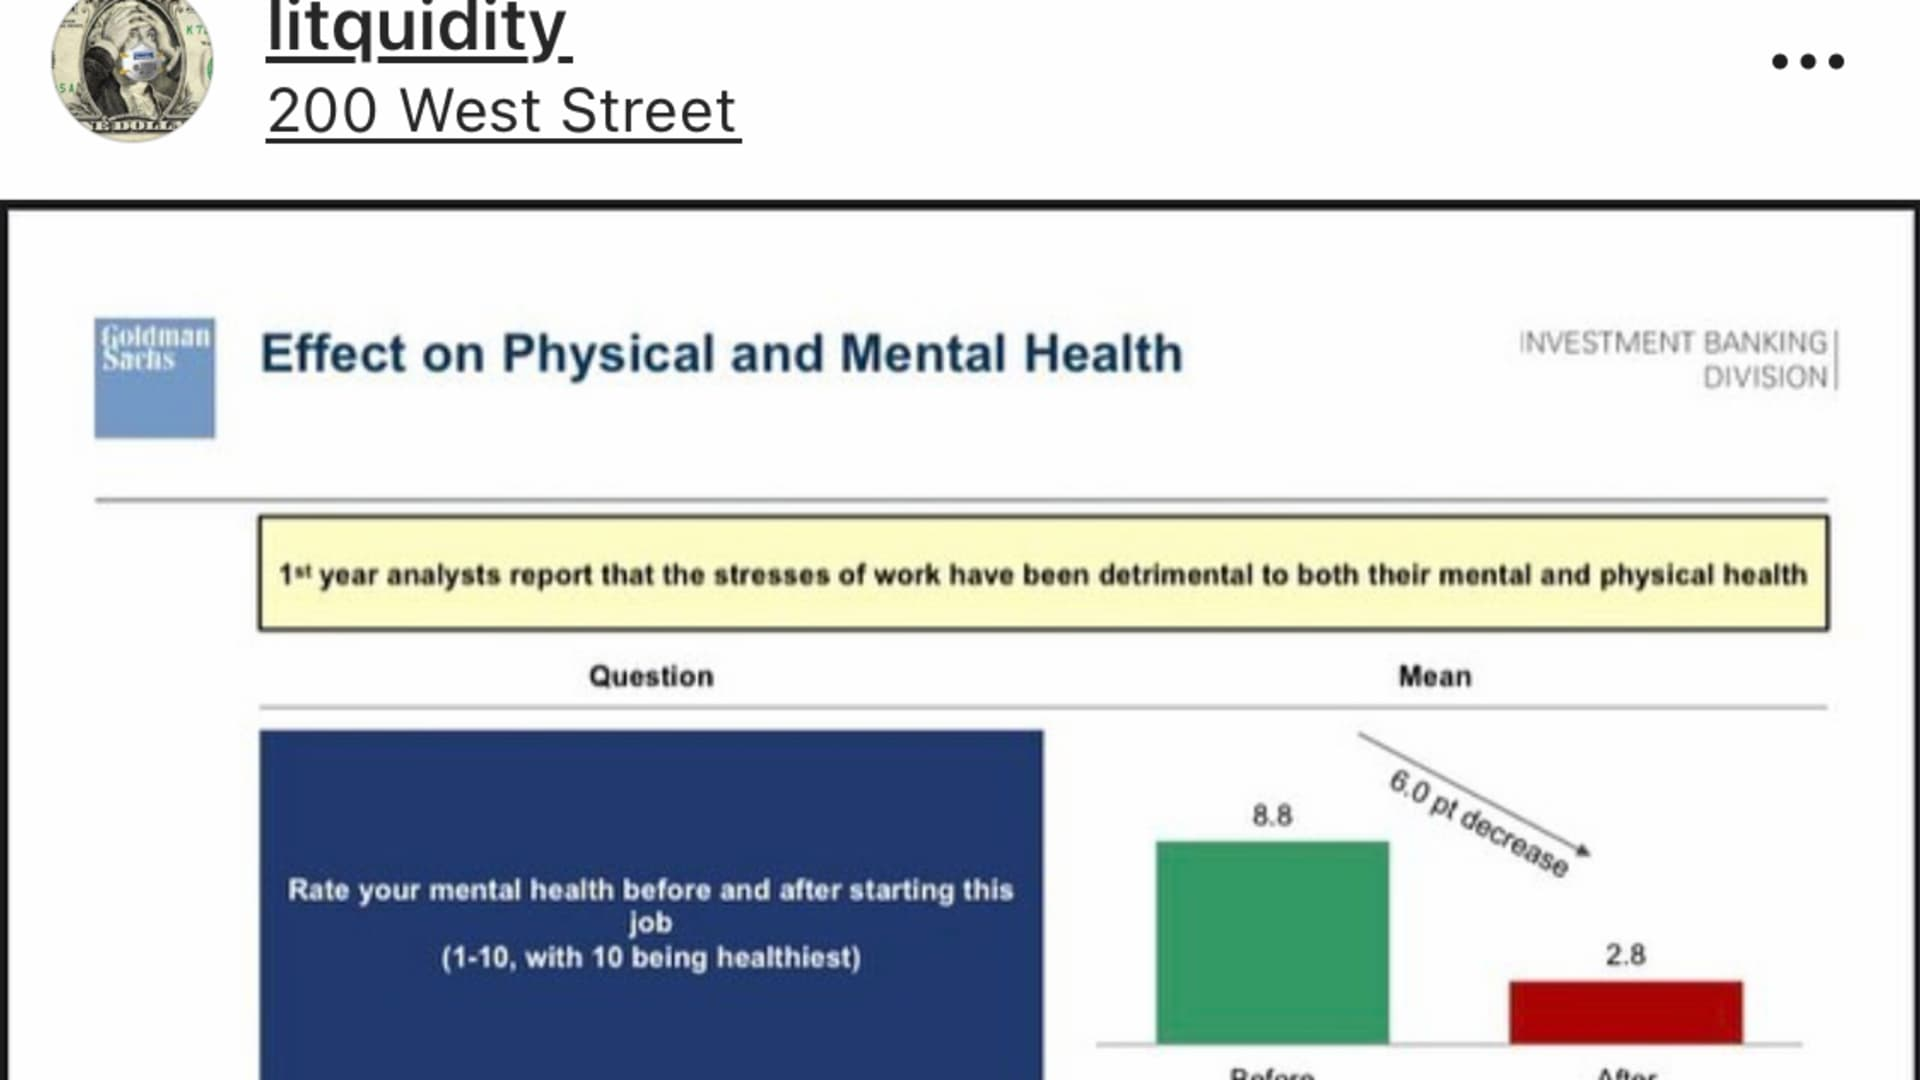 Goldman Sachs Effect on Physical and Mental Health.